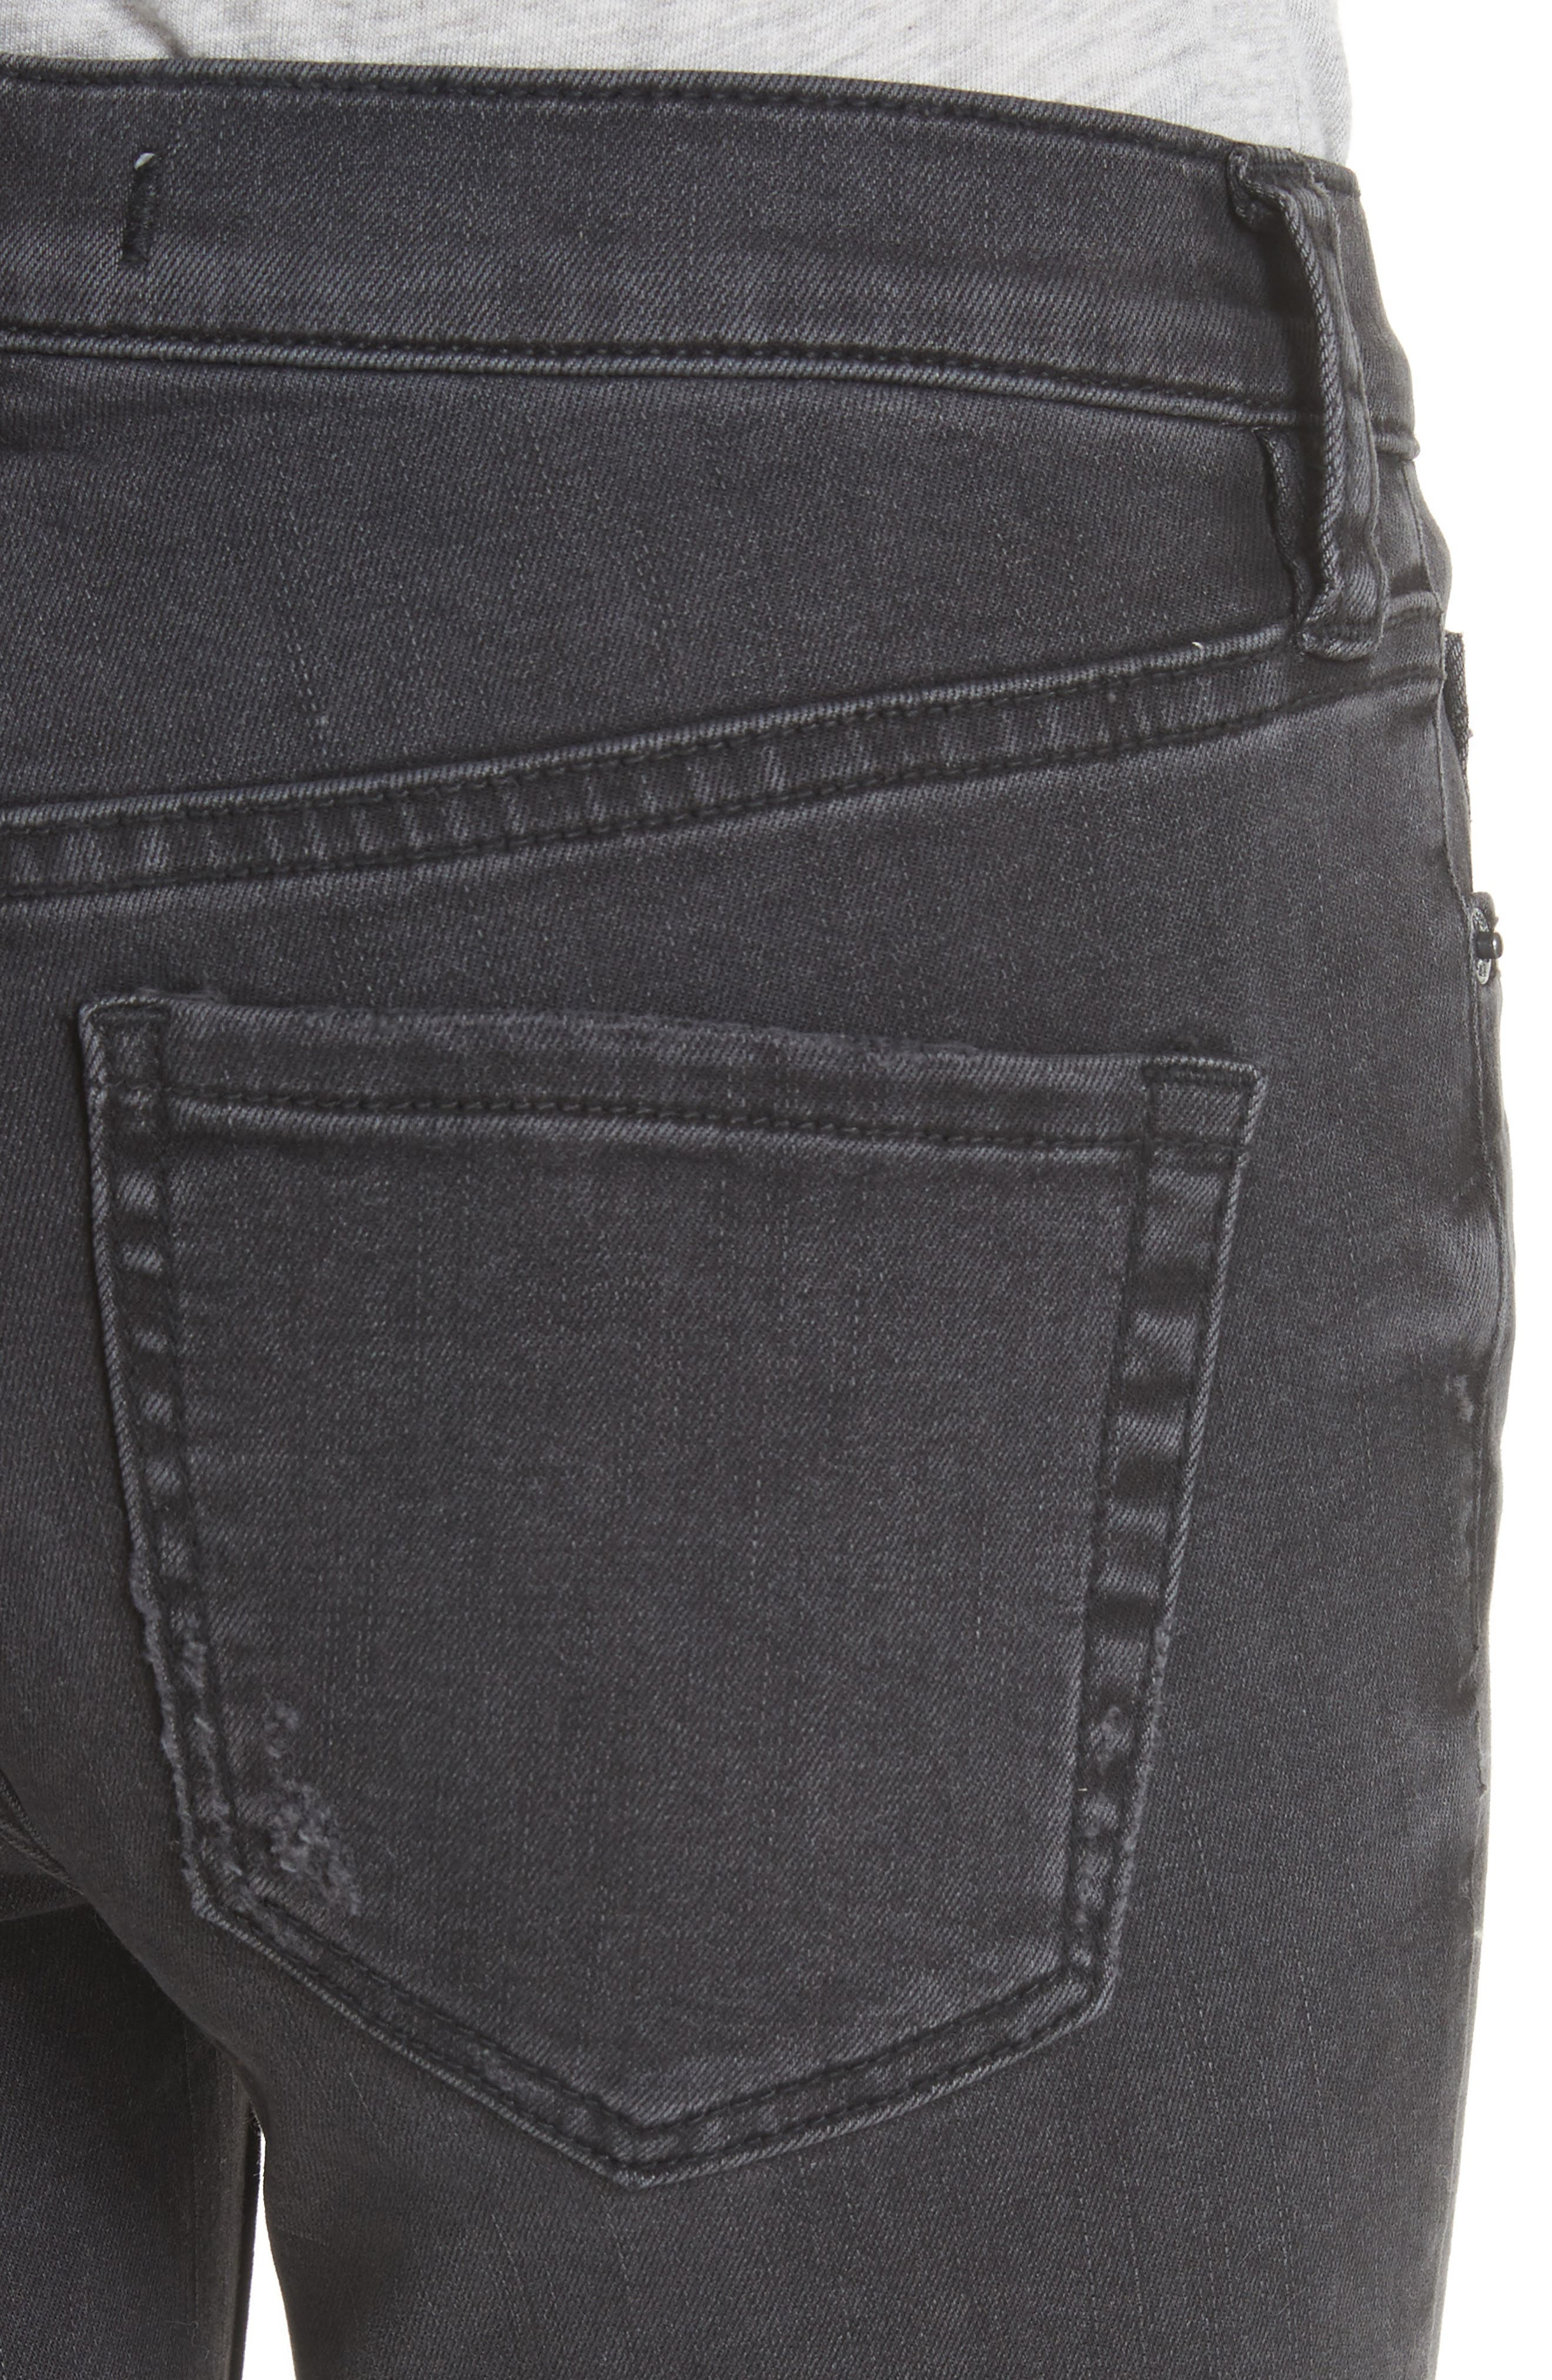 Great Heights Frayed Skinny Jeans,                             Alternate thumbnail 4, color,                             Black